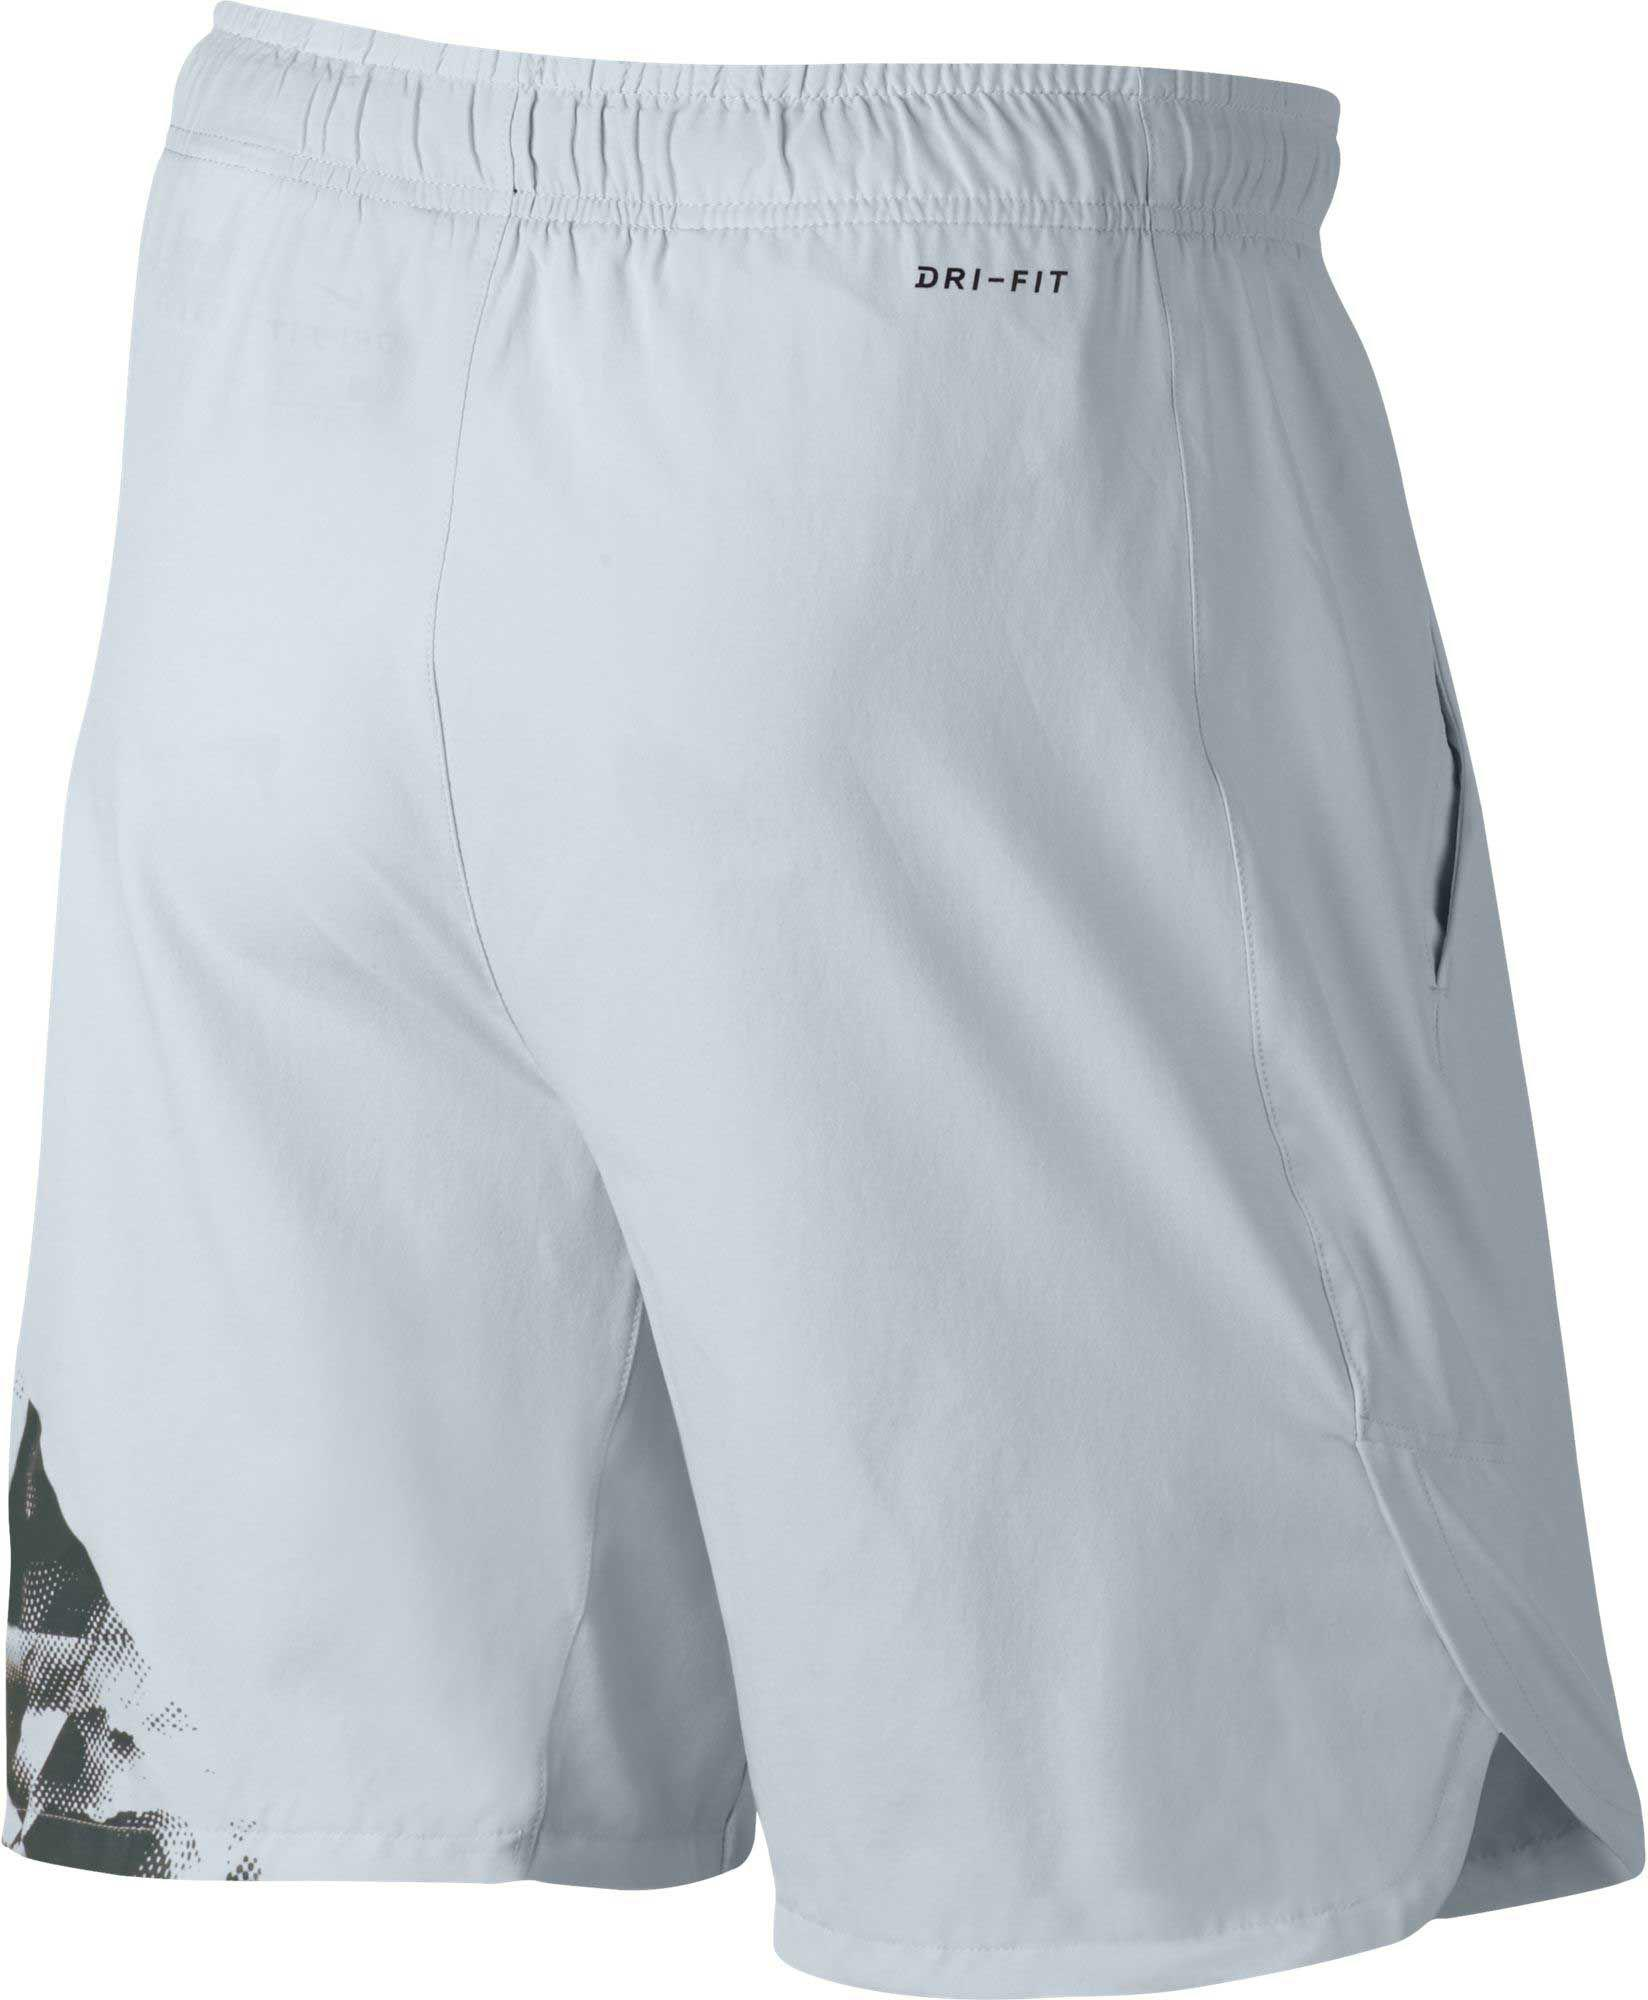 290cac2a101a2 Lyst - Nike Clouded Graphic Flex Vent Woven Shorts for Men